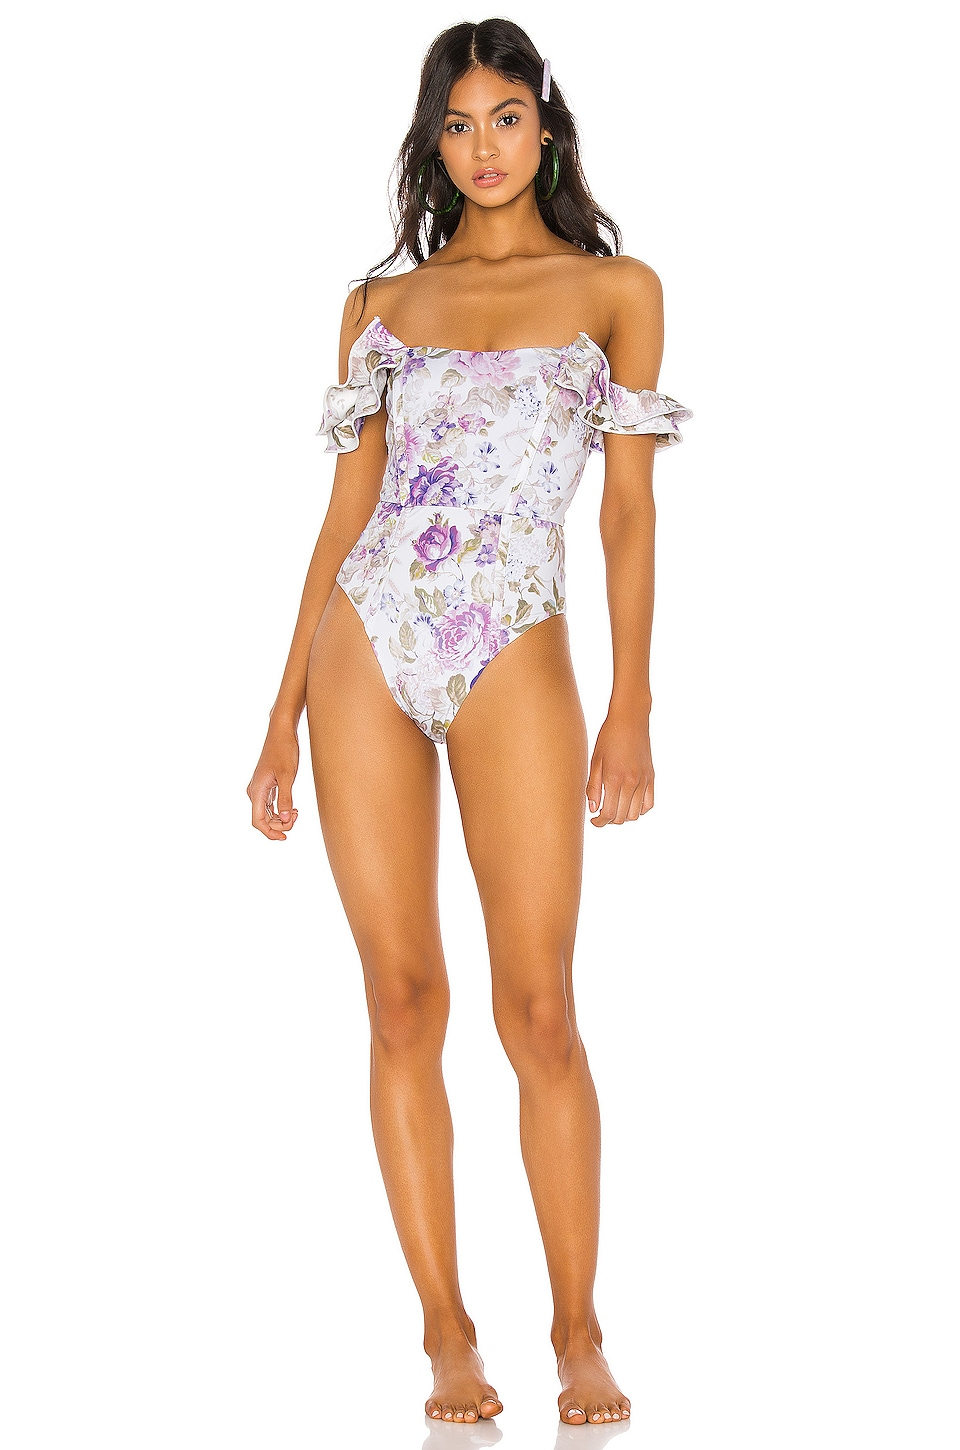 BEACH RIOT x V. Chapman Arbor One Piece in Floral Print